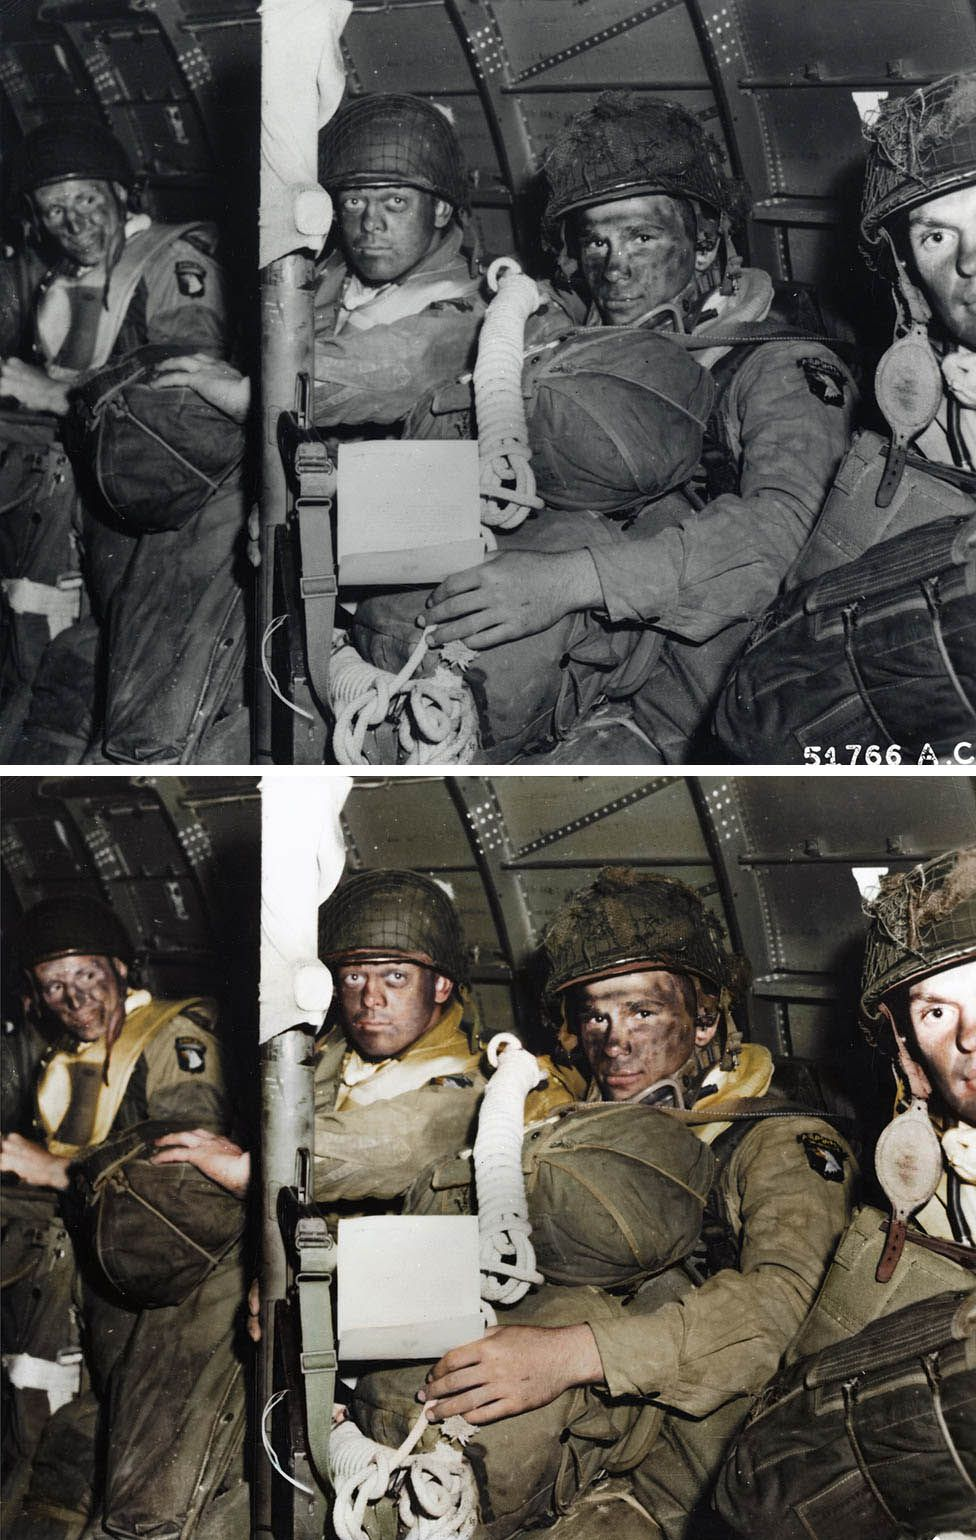 Troops from the 101st Airborne